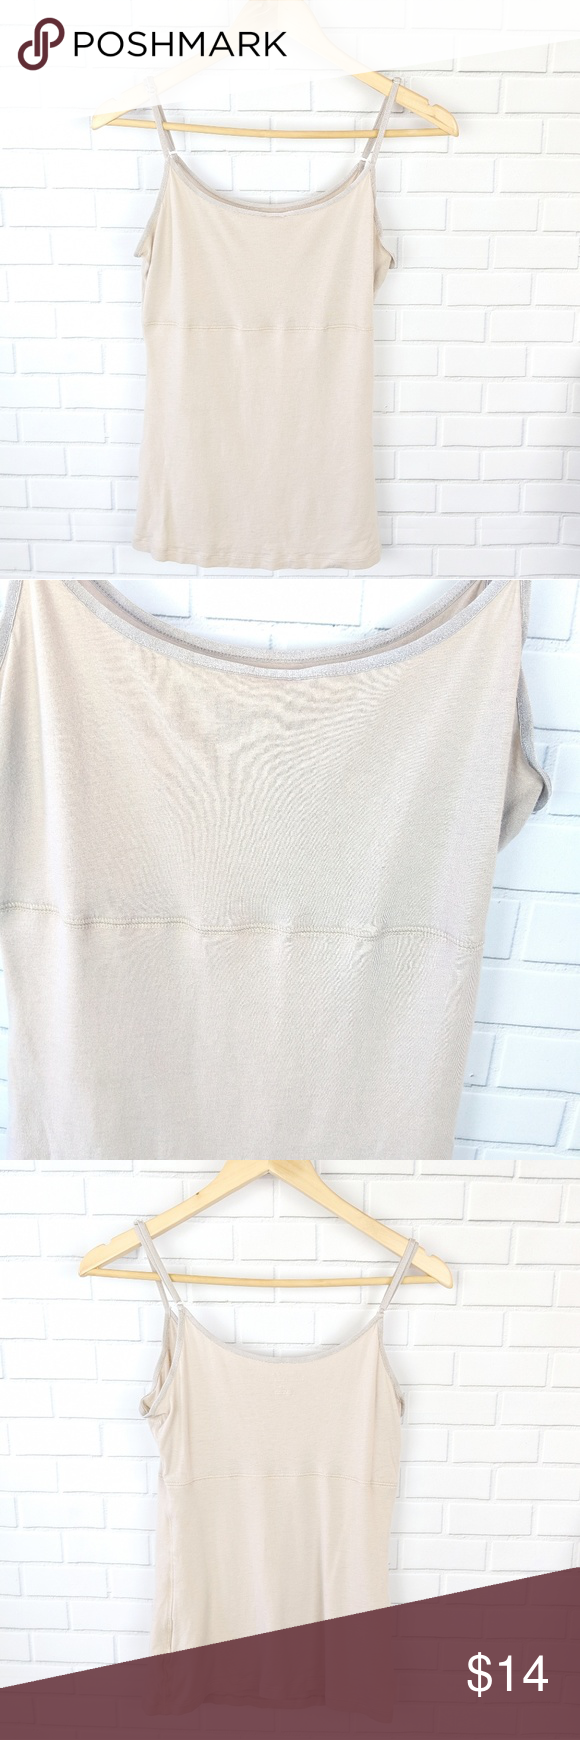 daisy fuentes slimming camisole